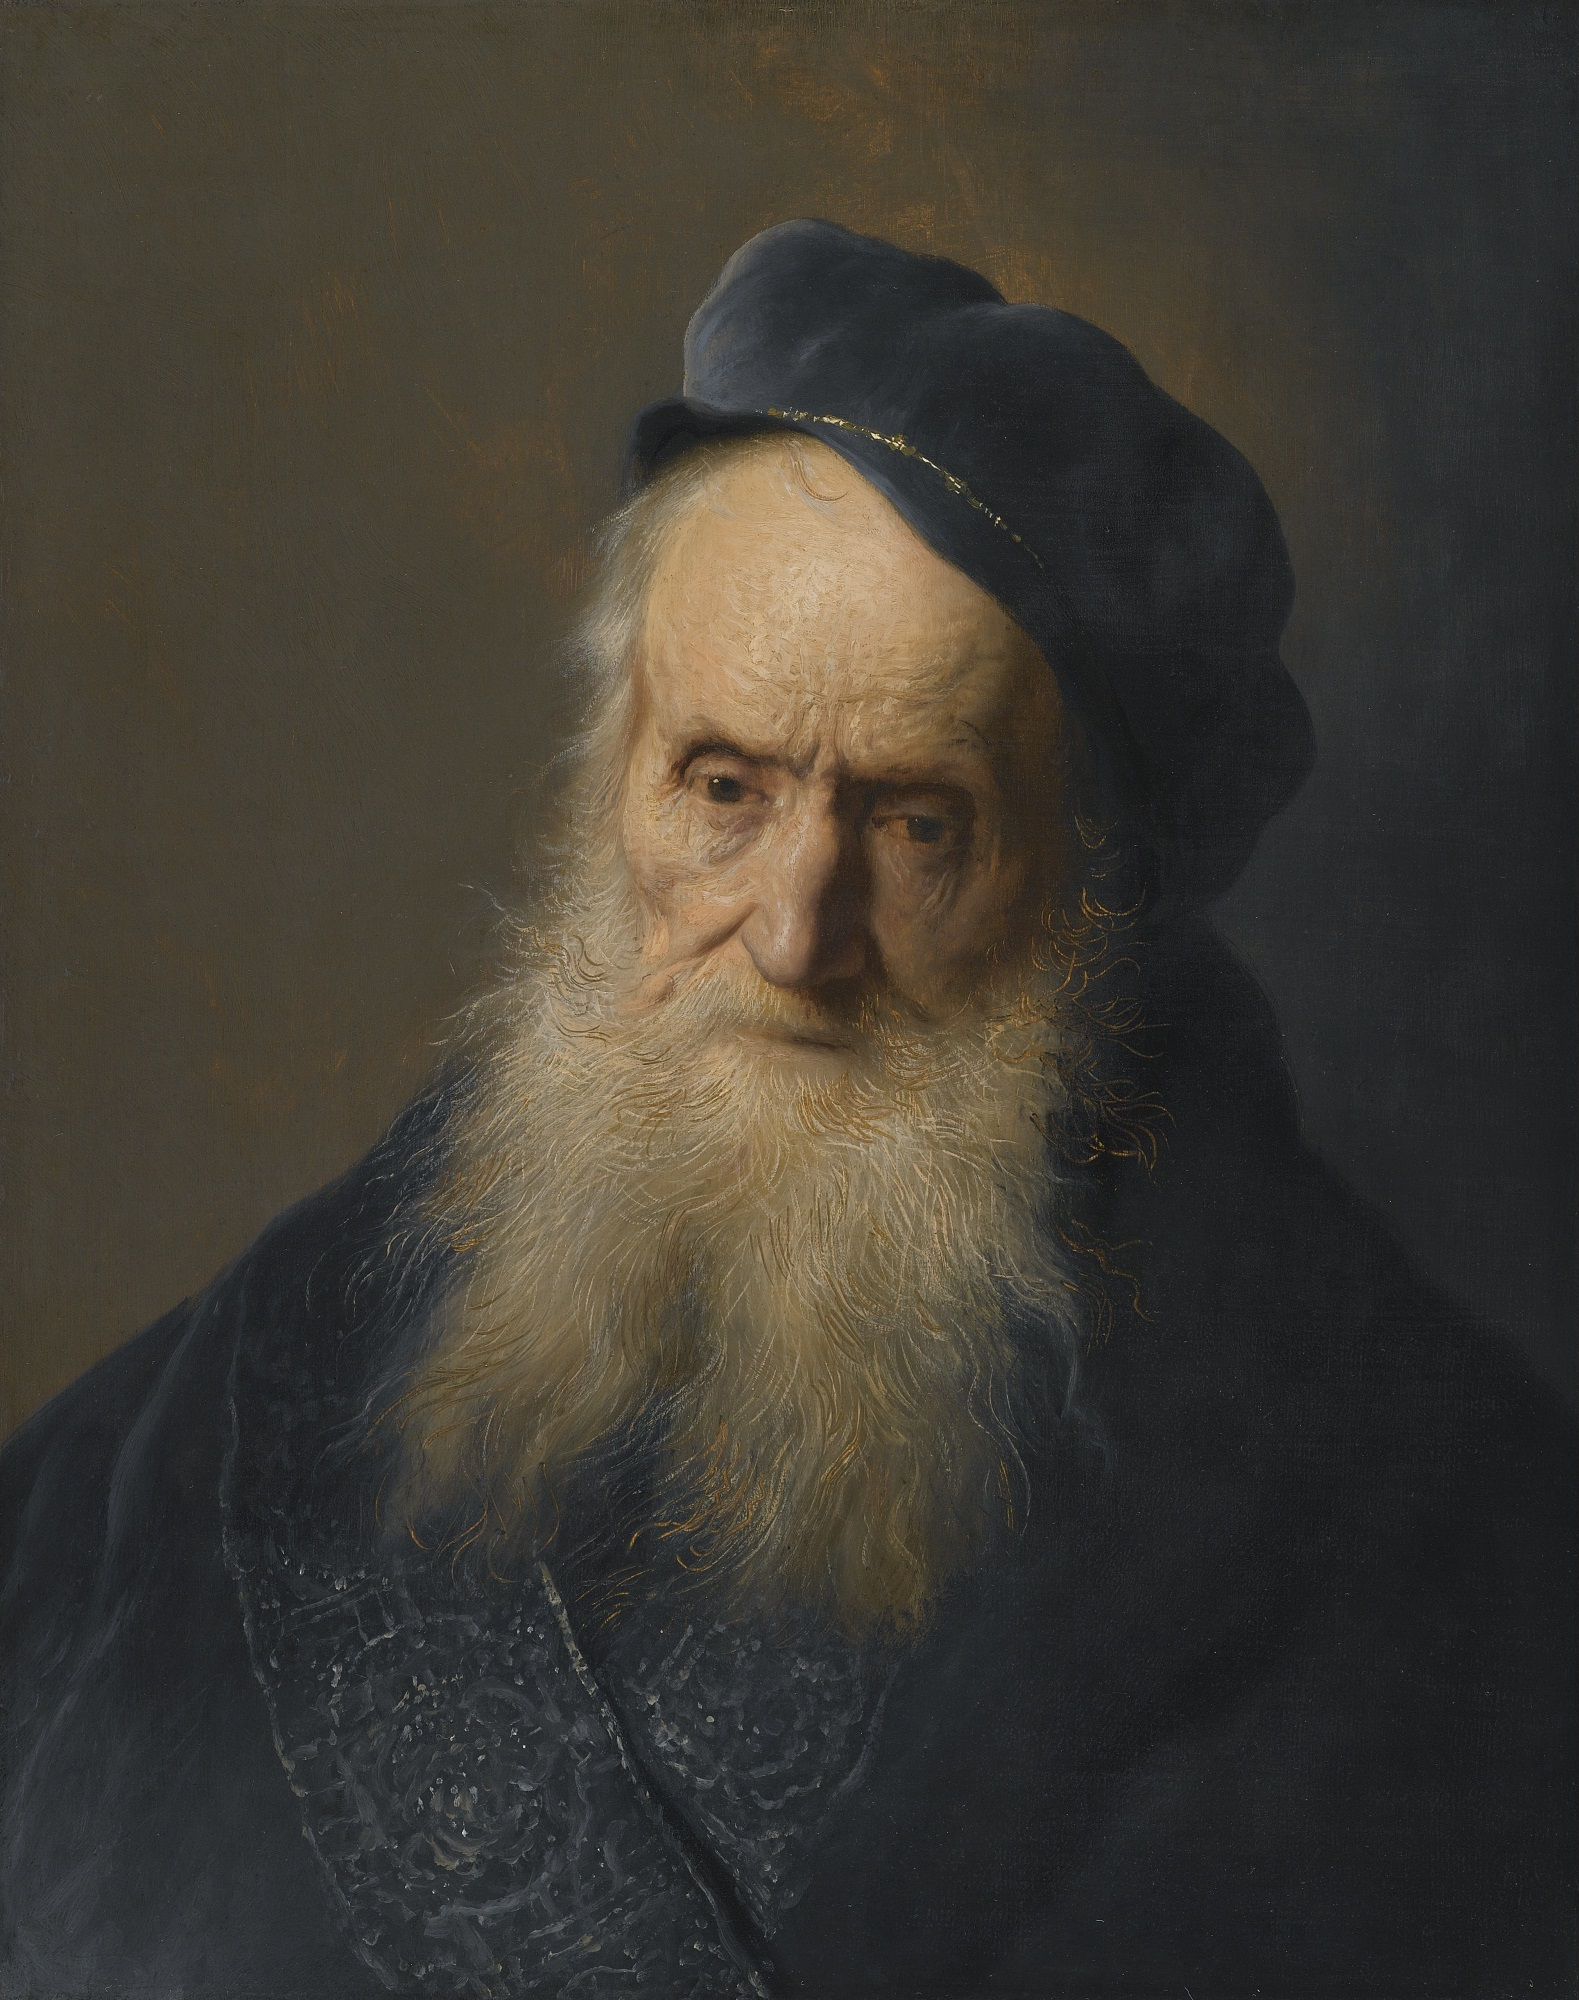 A serious elderly man, with a long white beard, wearing a blue soft cap and gown.